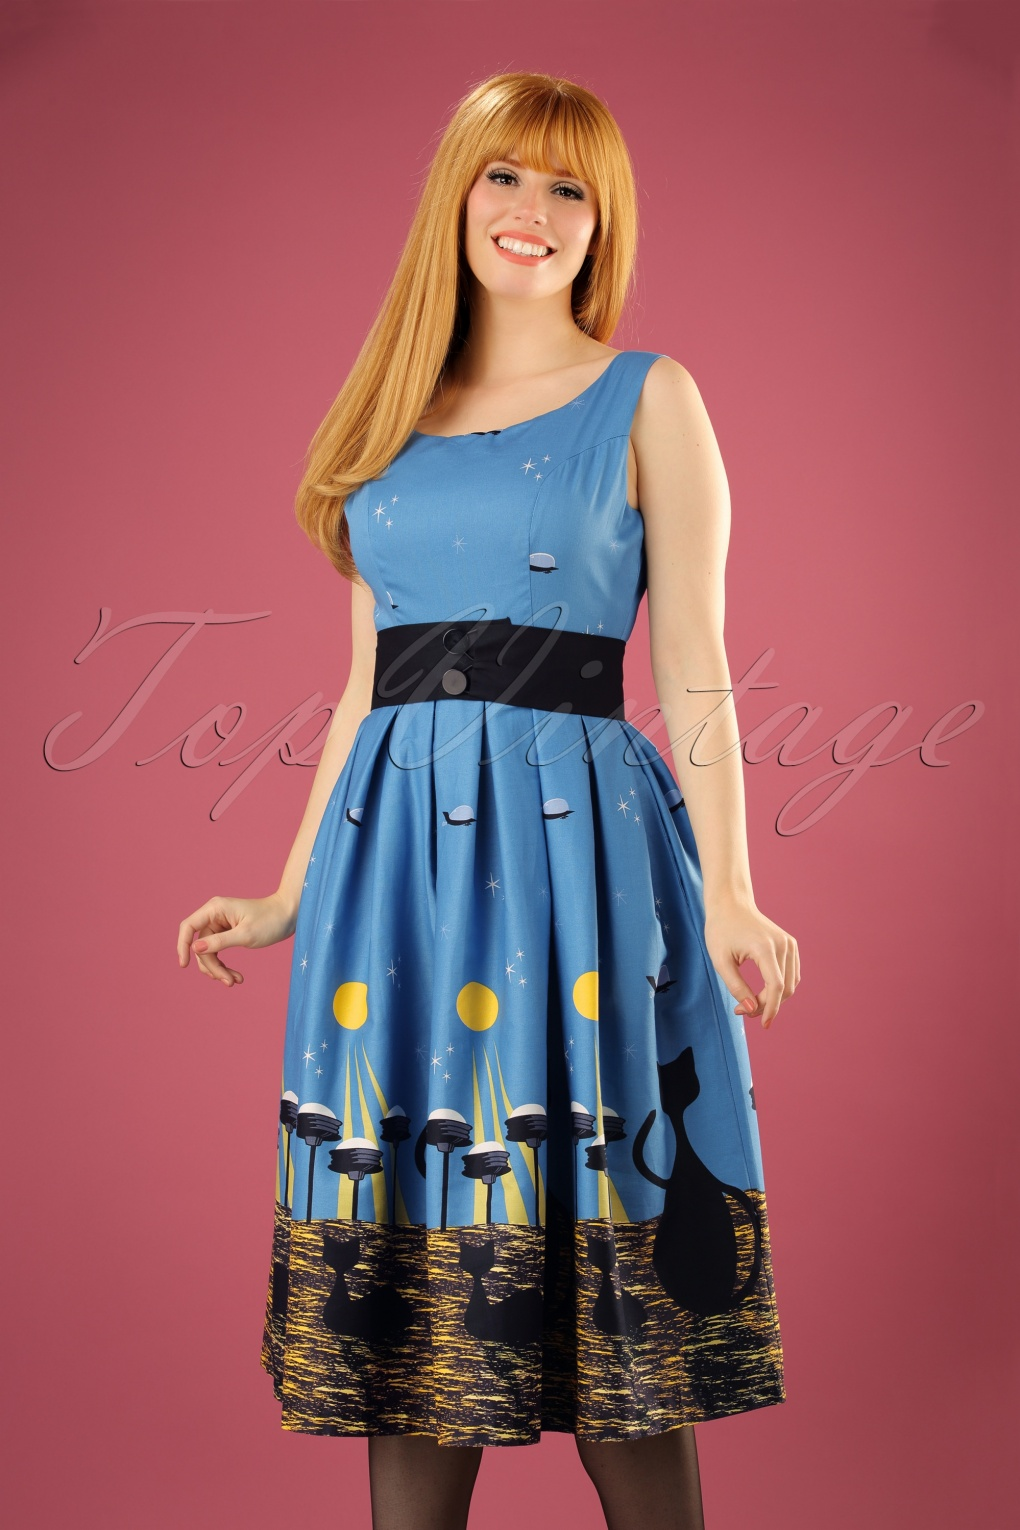 Vintage Retro Halloween Themed Clothing 50s Lana Space Cat Swing Dress in Blue £45.59 AT vintagedancer.com